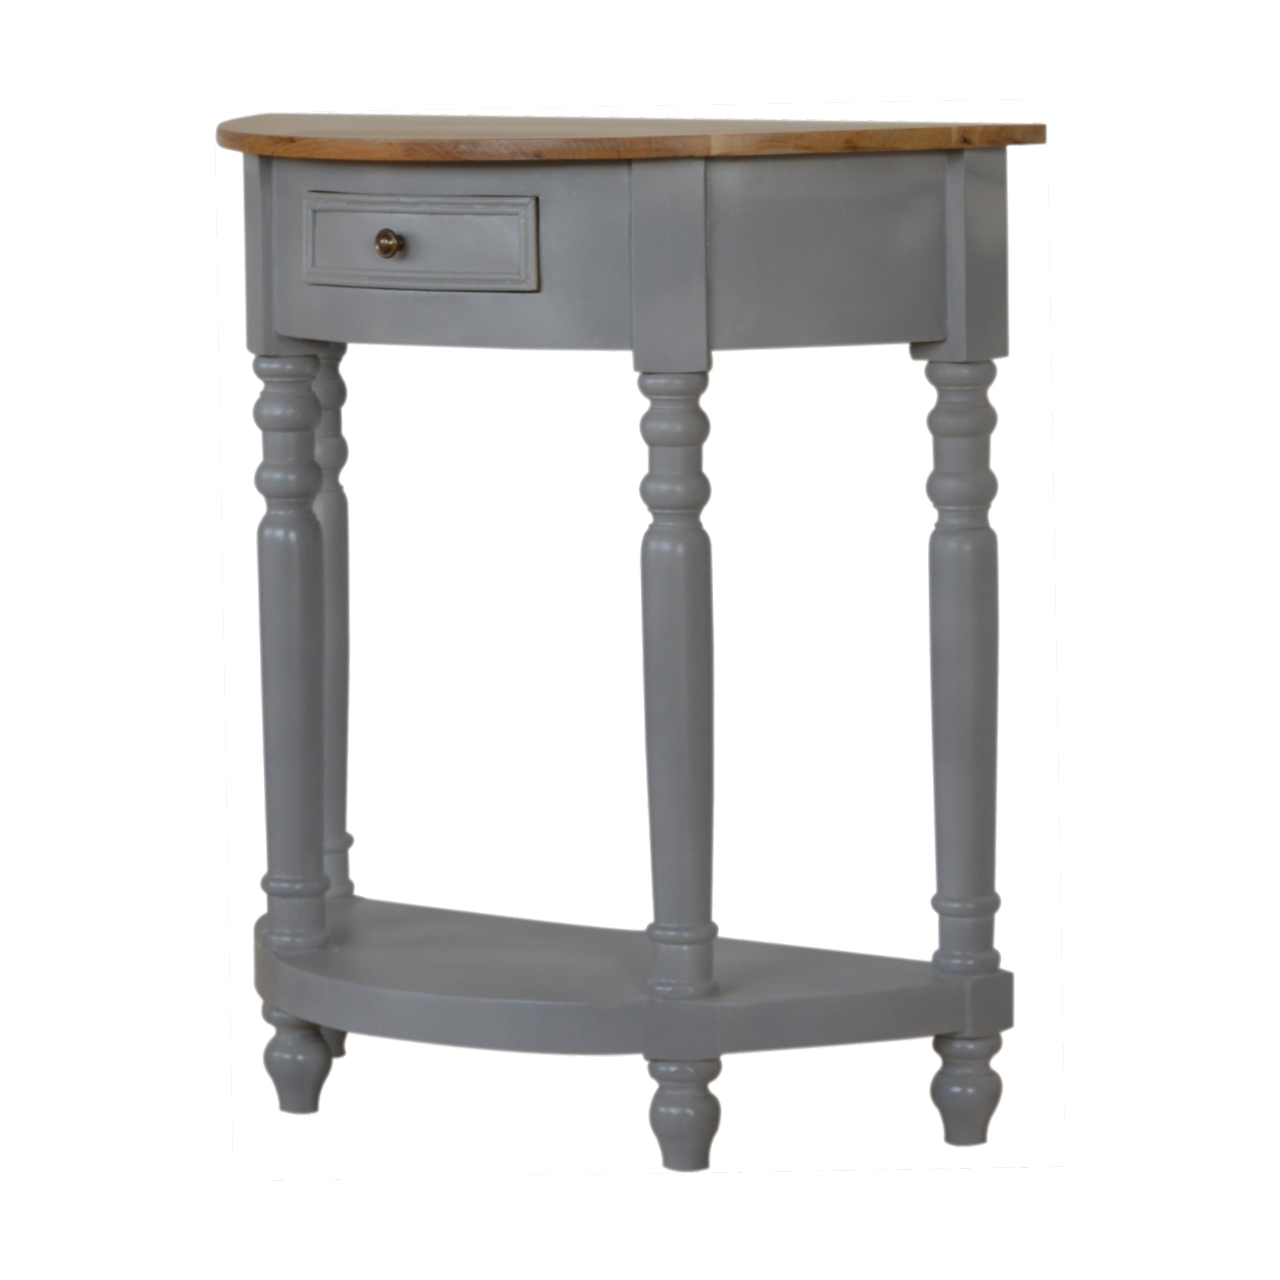 IN505-Grey-Painted-1-Drawer-Serpentine-Table-with-Turned-Legs-1